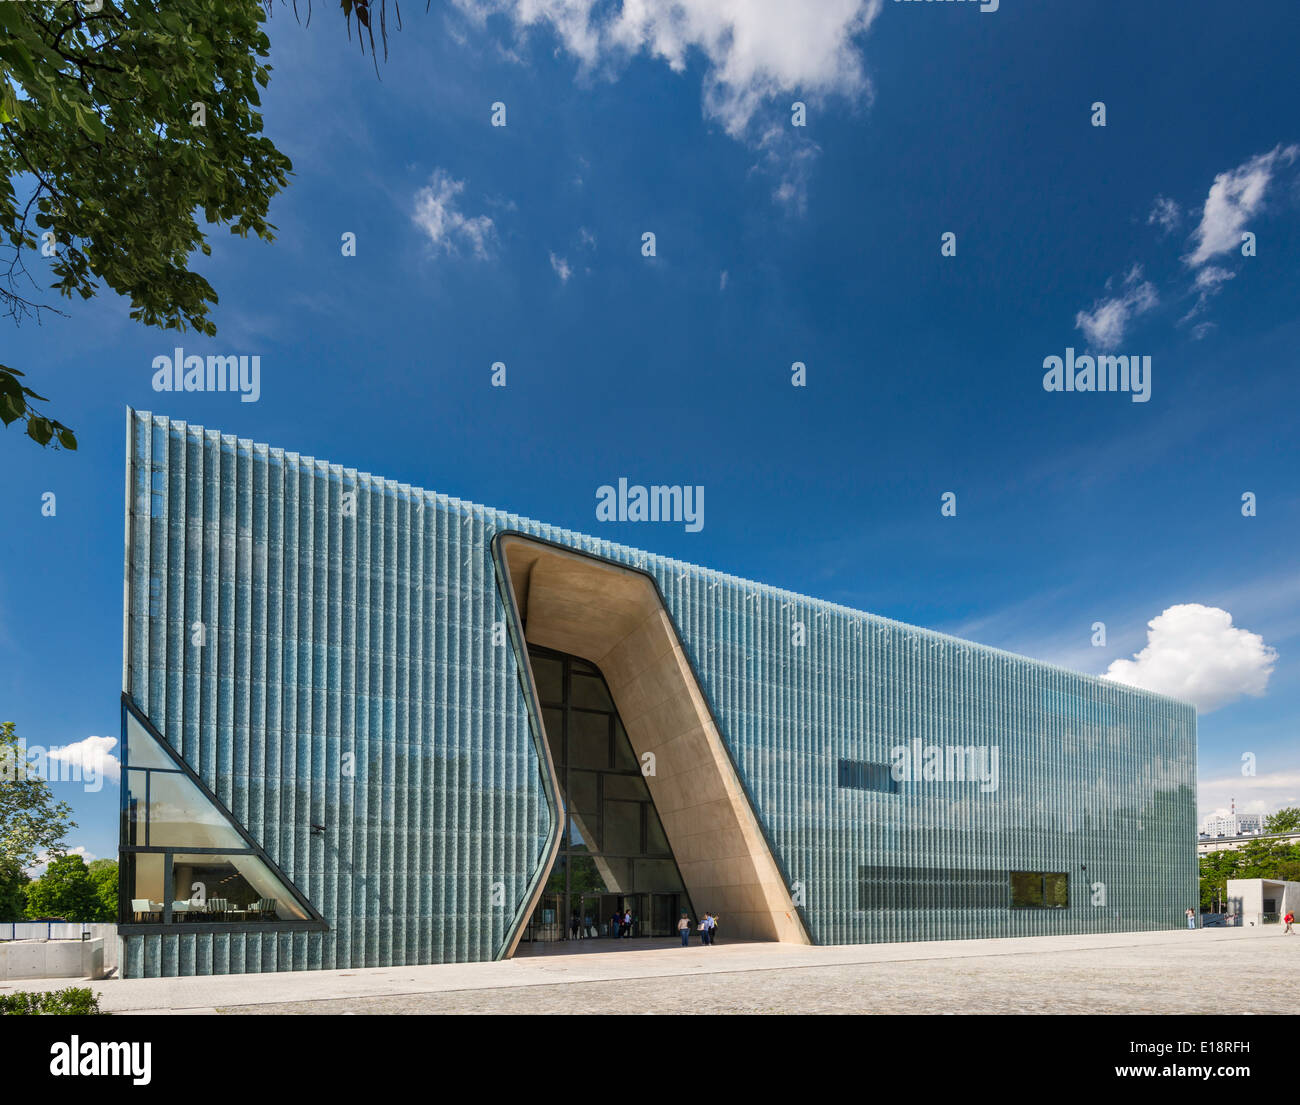 Museum of the History of Polish Jews, opened in 2013, Warsaw, Poland - Stock Image